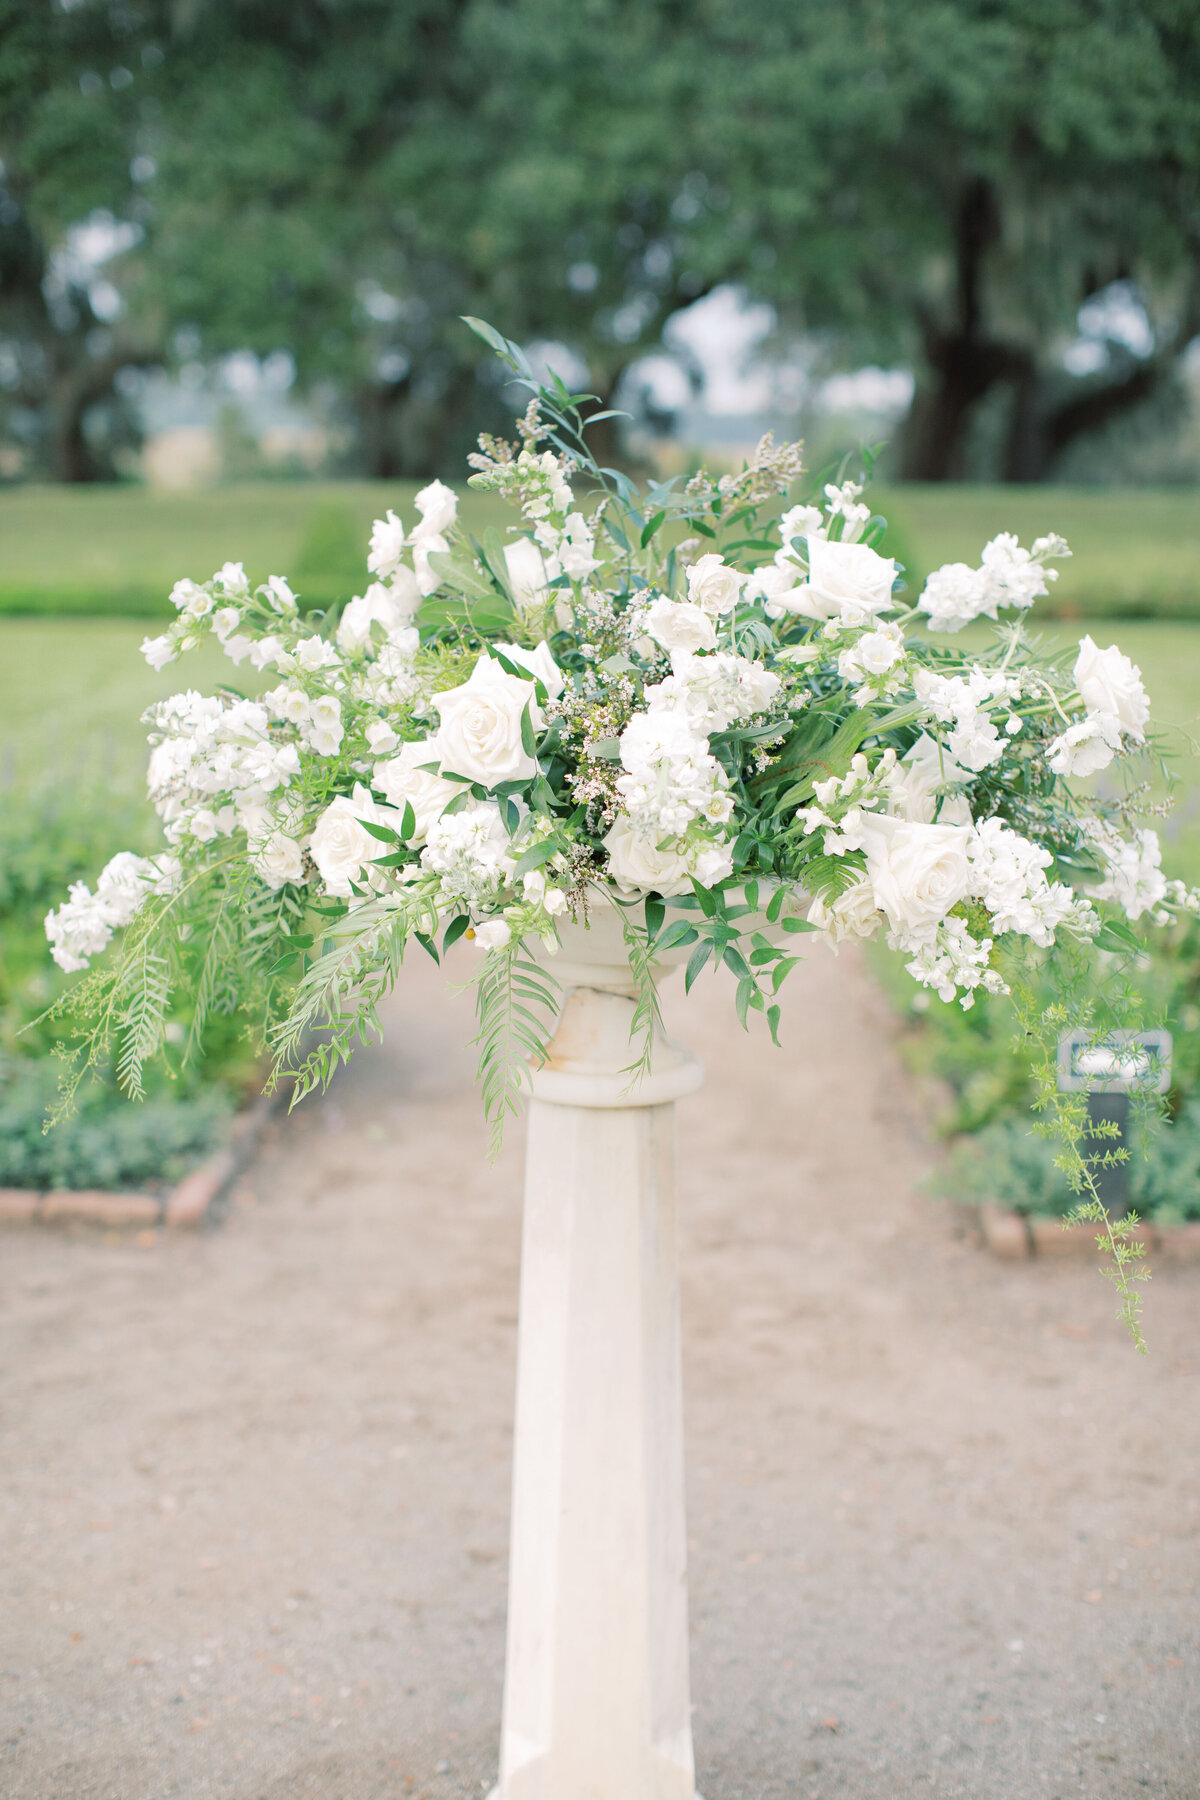 Melton_Wedding__Middleton_Place_Plantation_Charleston_South_Carolina_Jacksonville_Florida_Devon_Donnahoo_Photography__0610